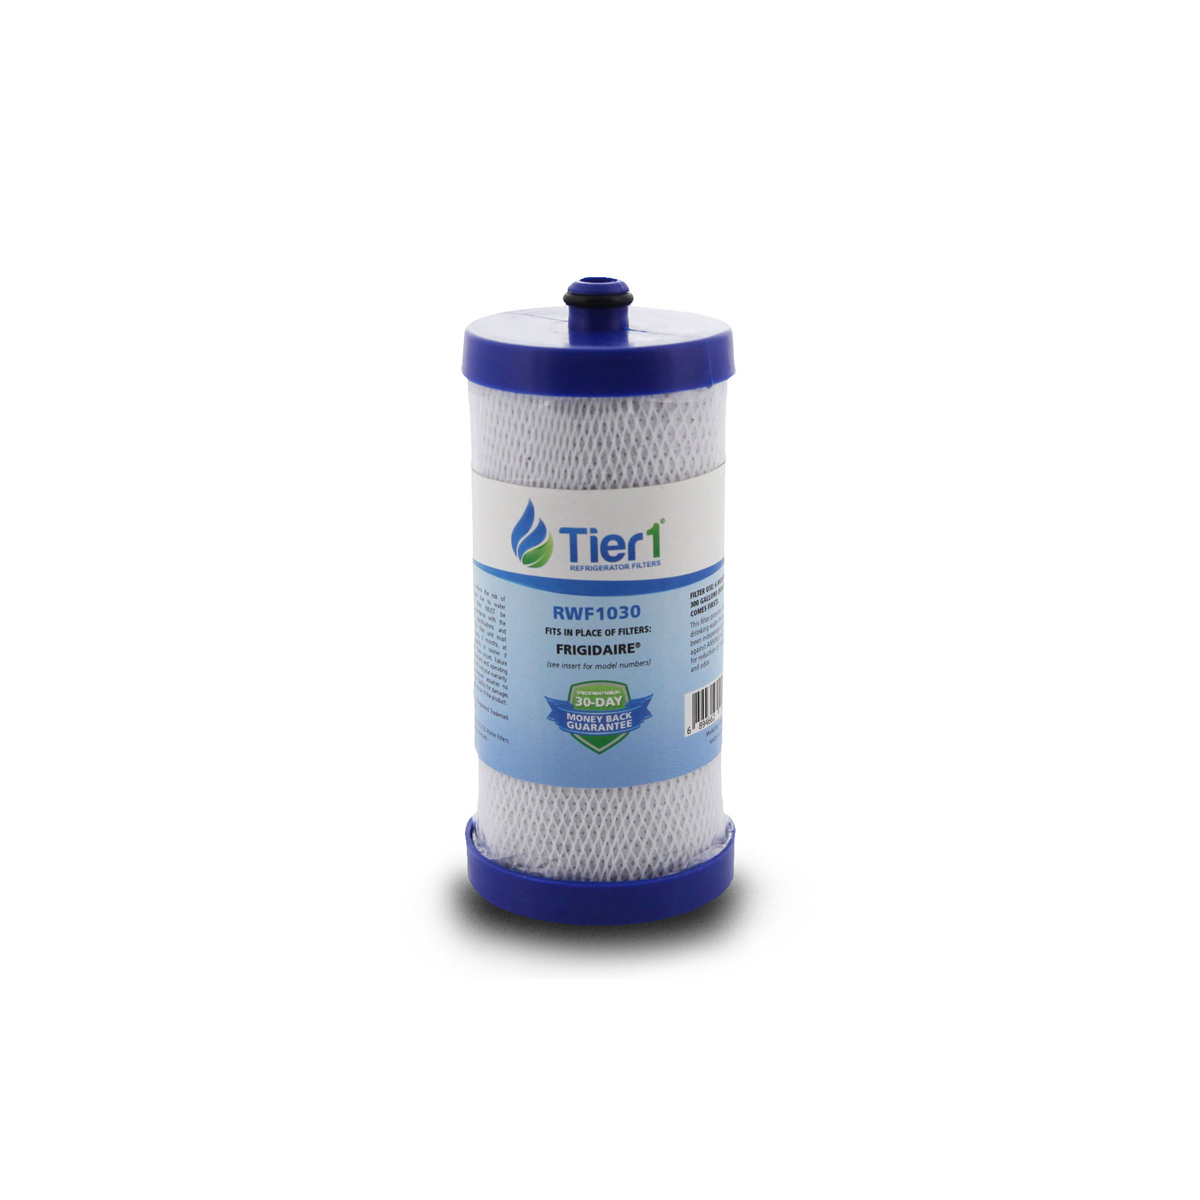 Frigidaire WFCB/WF1CB Comparable Water Filter Replacement by Tier1 TIER1-RWF1030